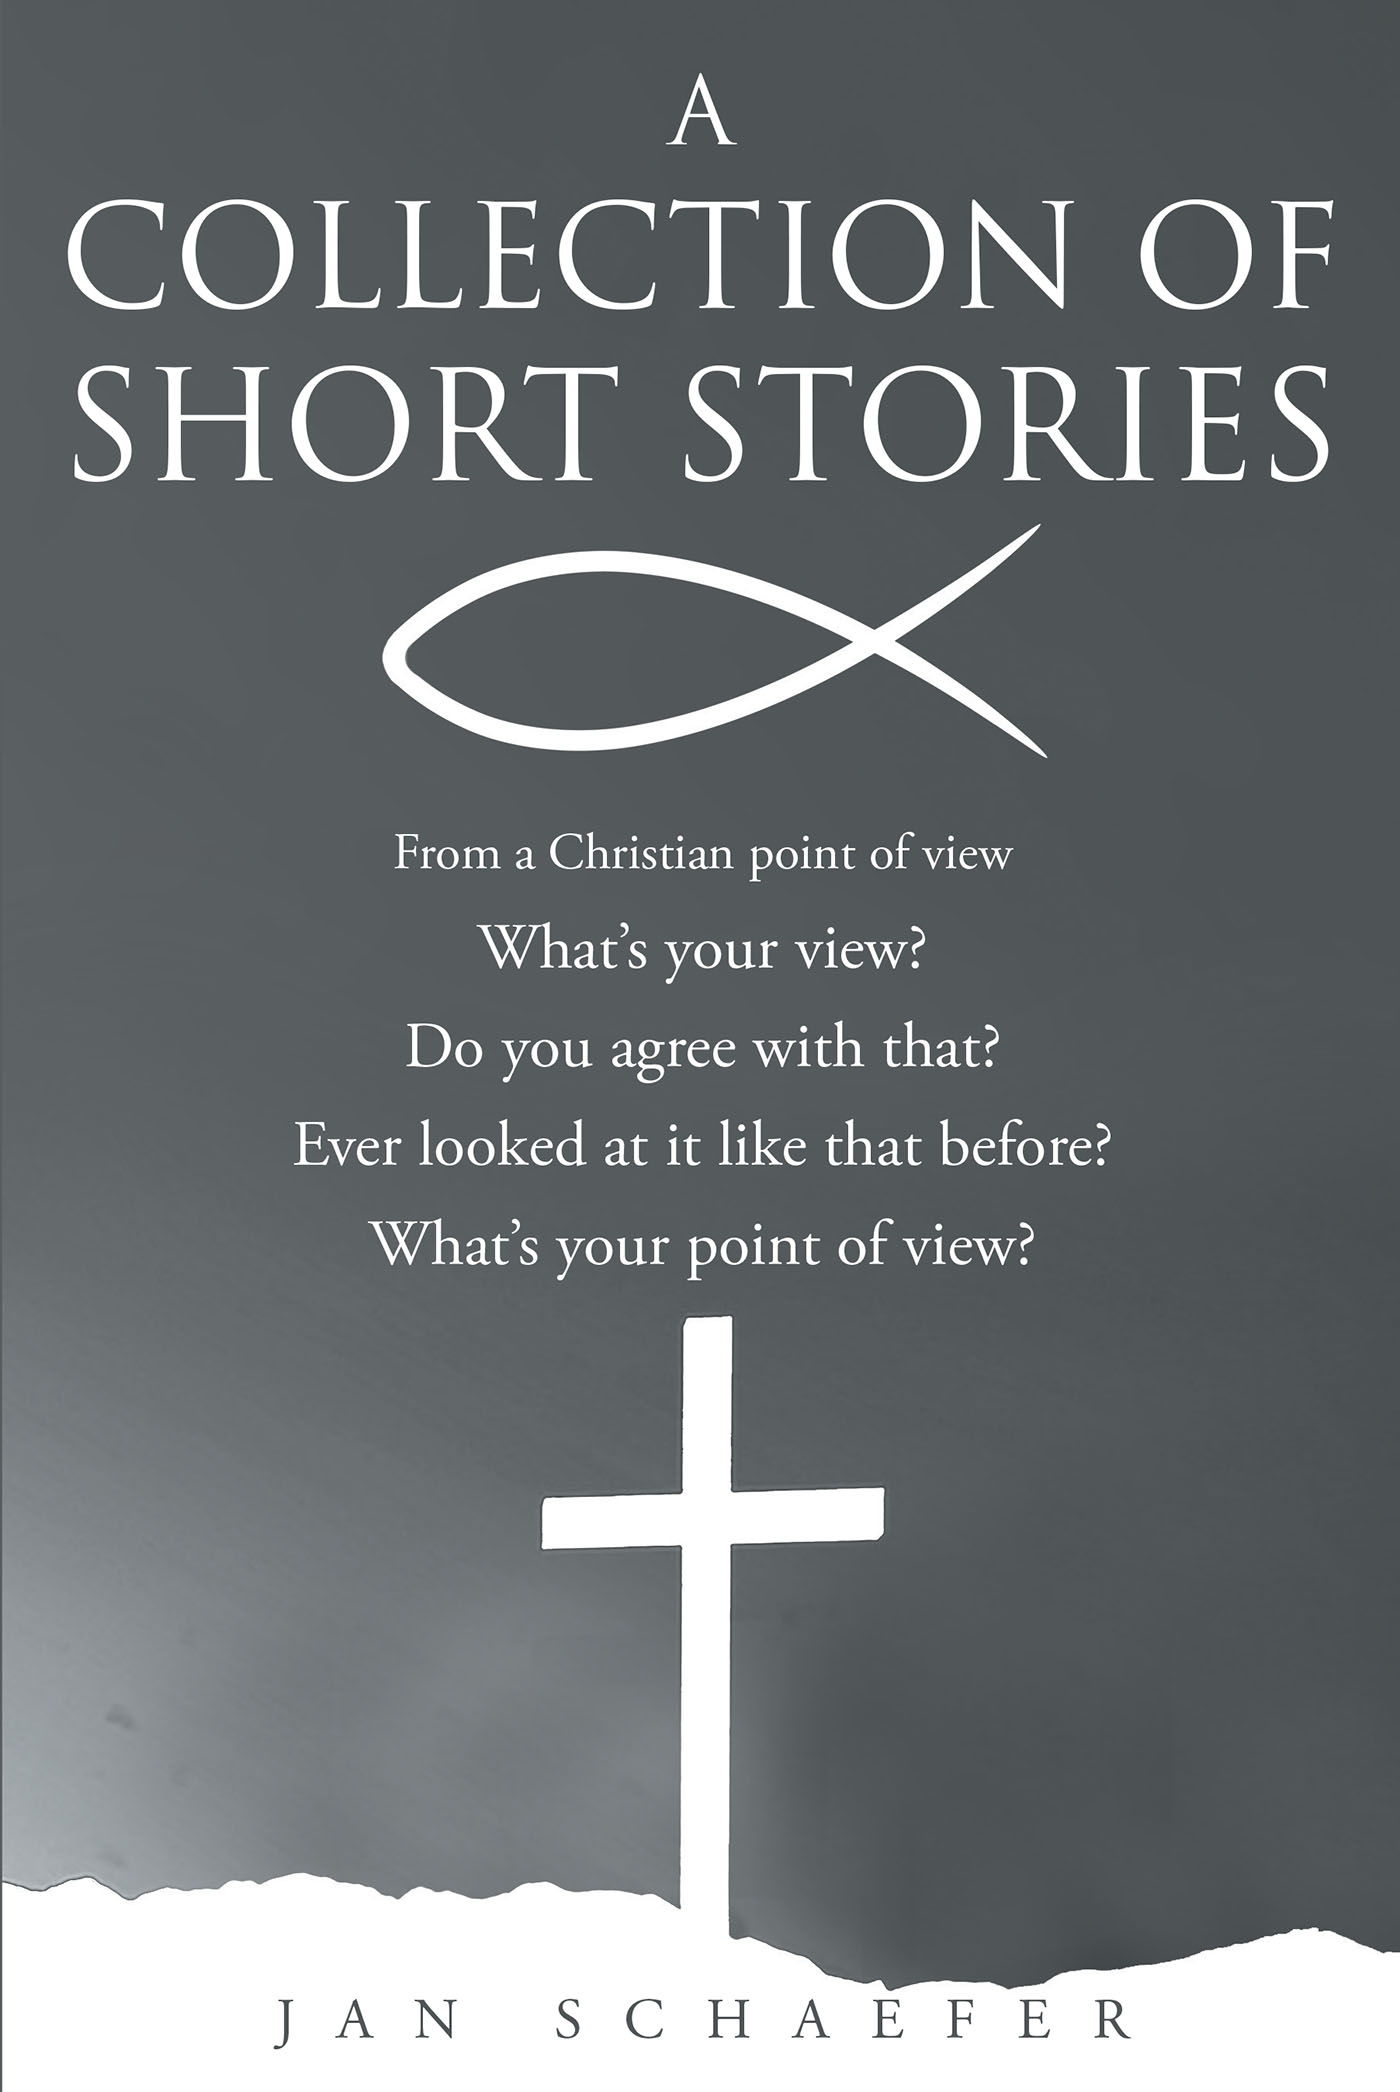 Books christian faith publishing free publishing kit christian a collection of short stories will hopefully make you think and ask yourself questions some of the entries will expand on given biblical stories and offer solutioingenieria Gallery